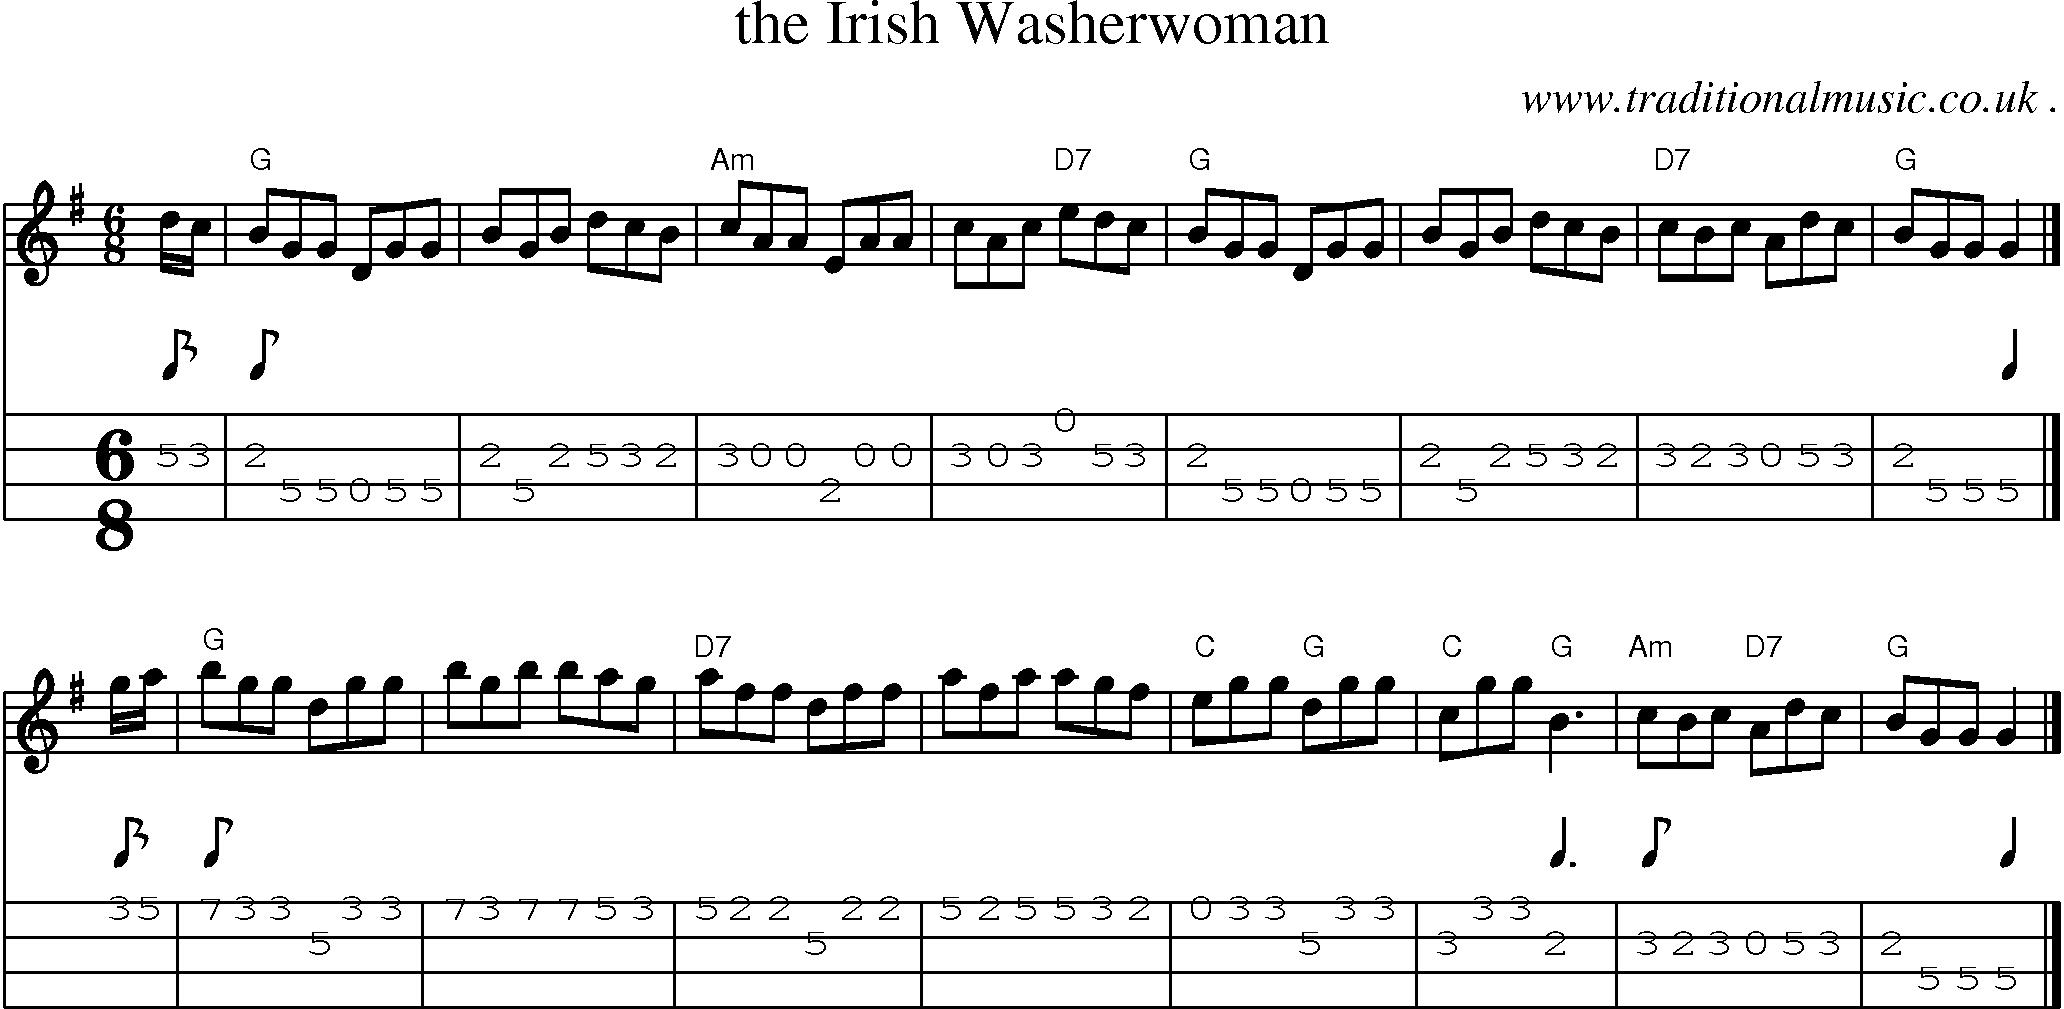 Scottish Tune, Sheetmusic, Midi, Mp3, Mandolin Tab and PDF for: The Irish Washerwoman